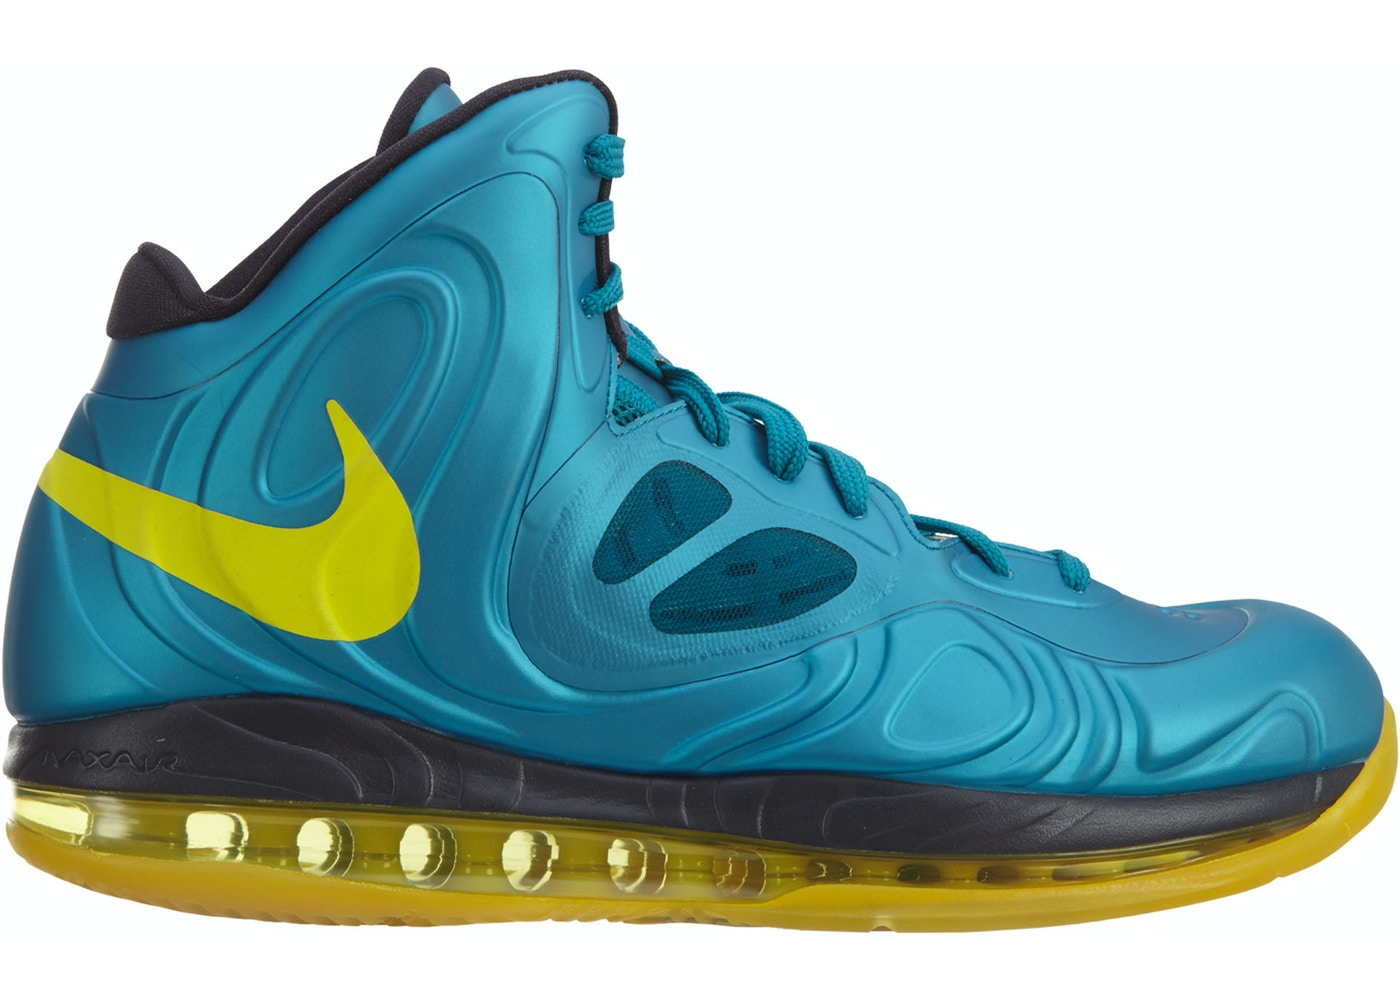 buy popular 5da8a 2cf80 ... Nike Air Max Hyperposite Tropical Teal Sonic Yellow ...